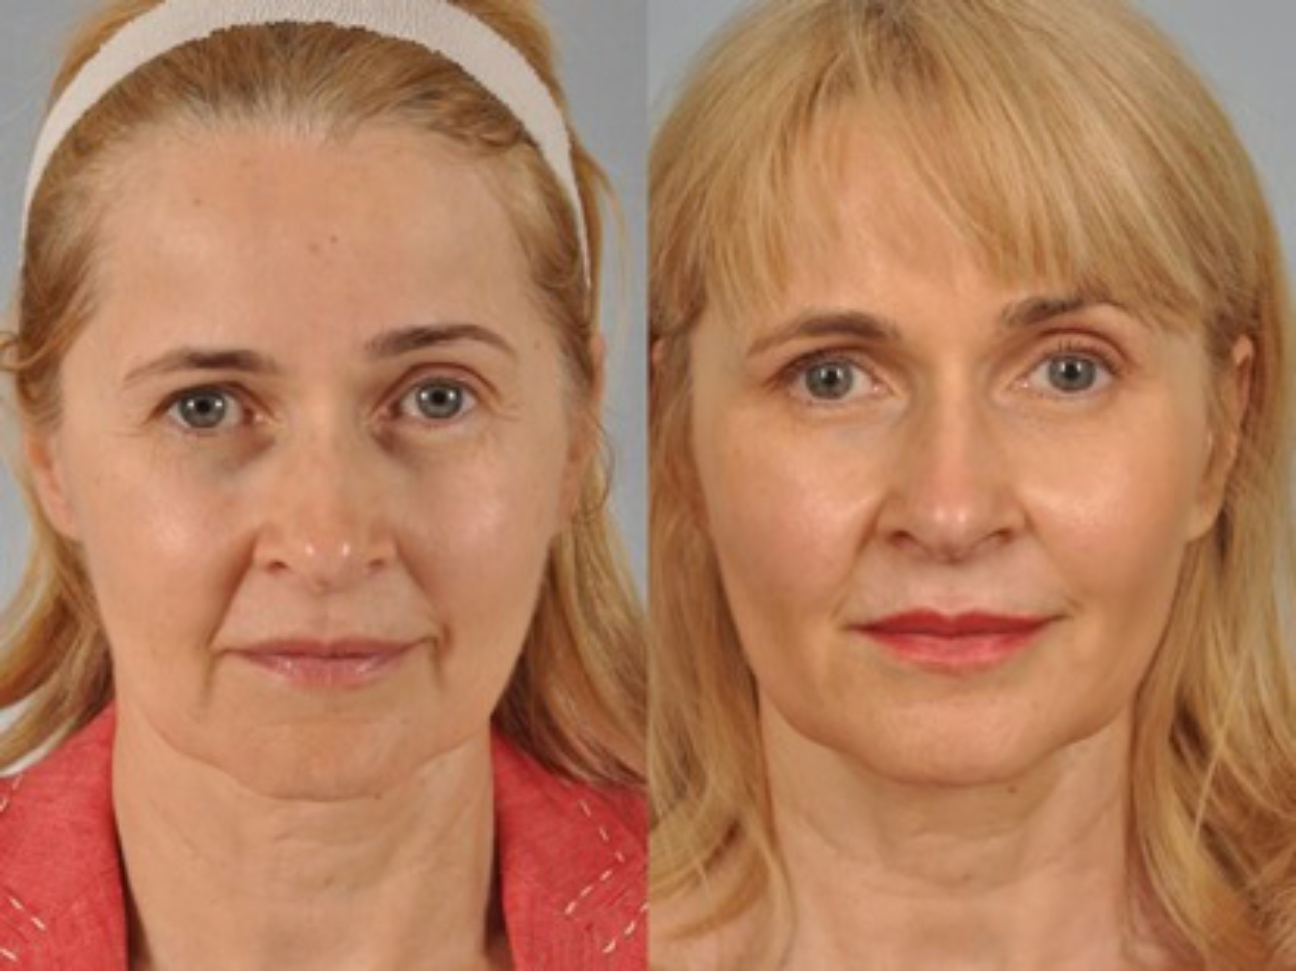 Marionette Lines treated with dermal fillers before and after